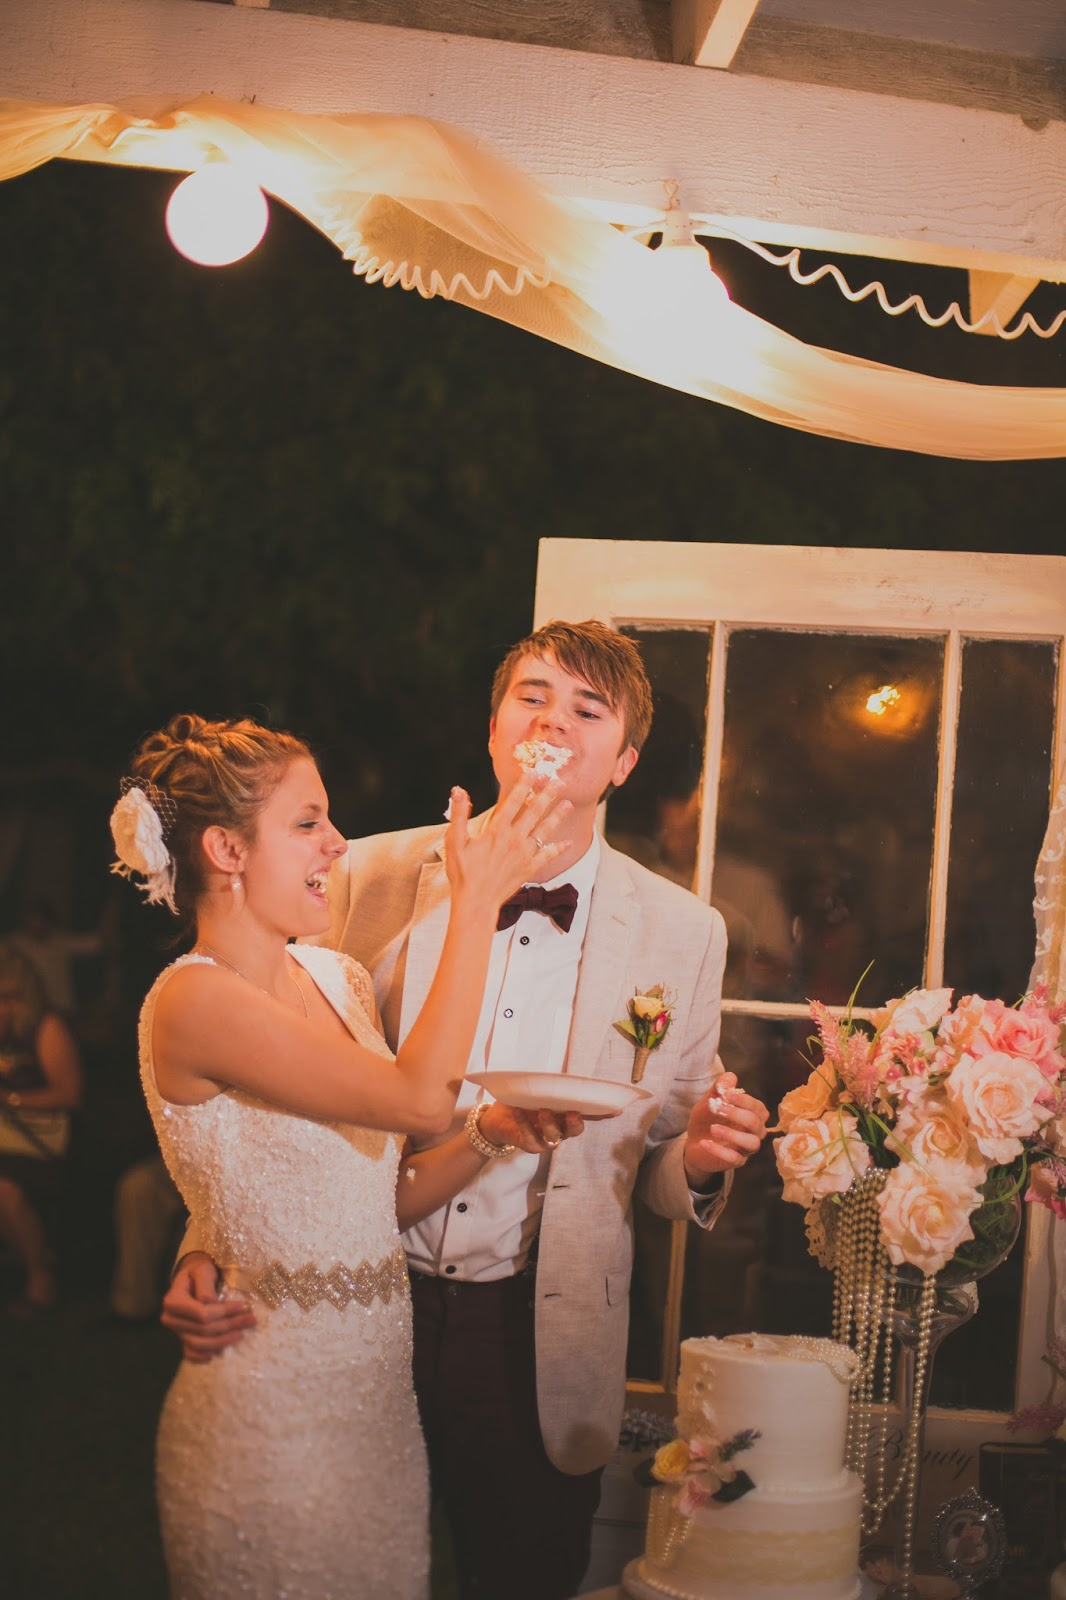 smashing of the cake in the grooms face